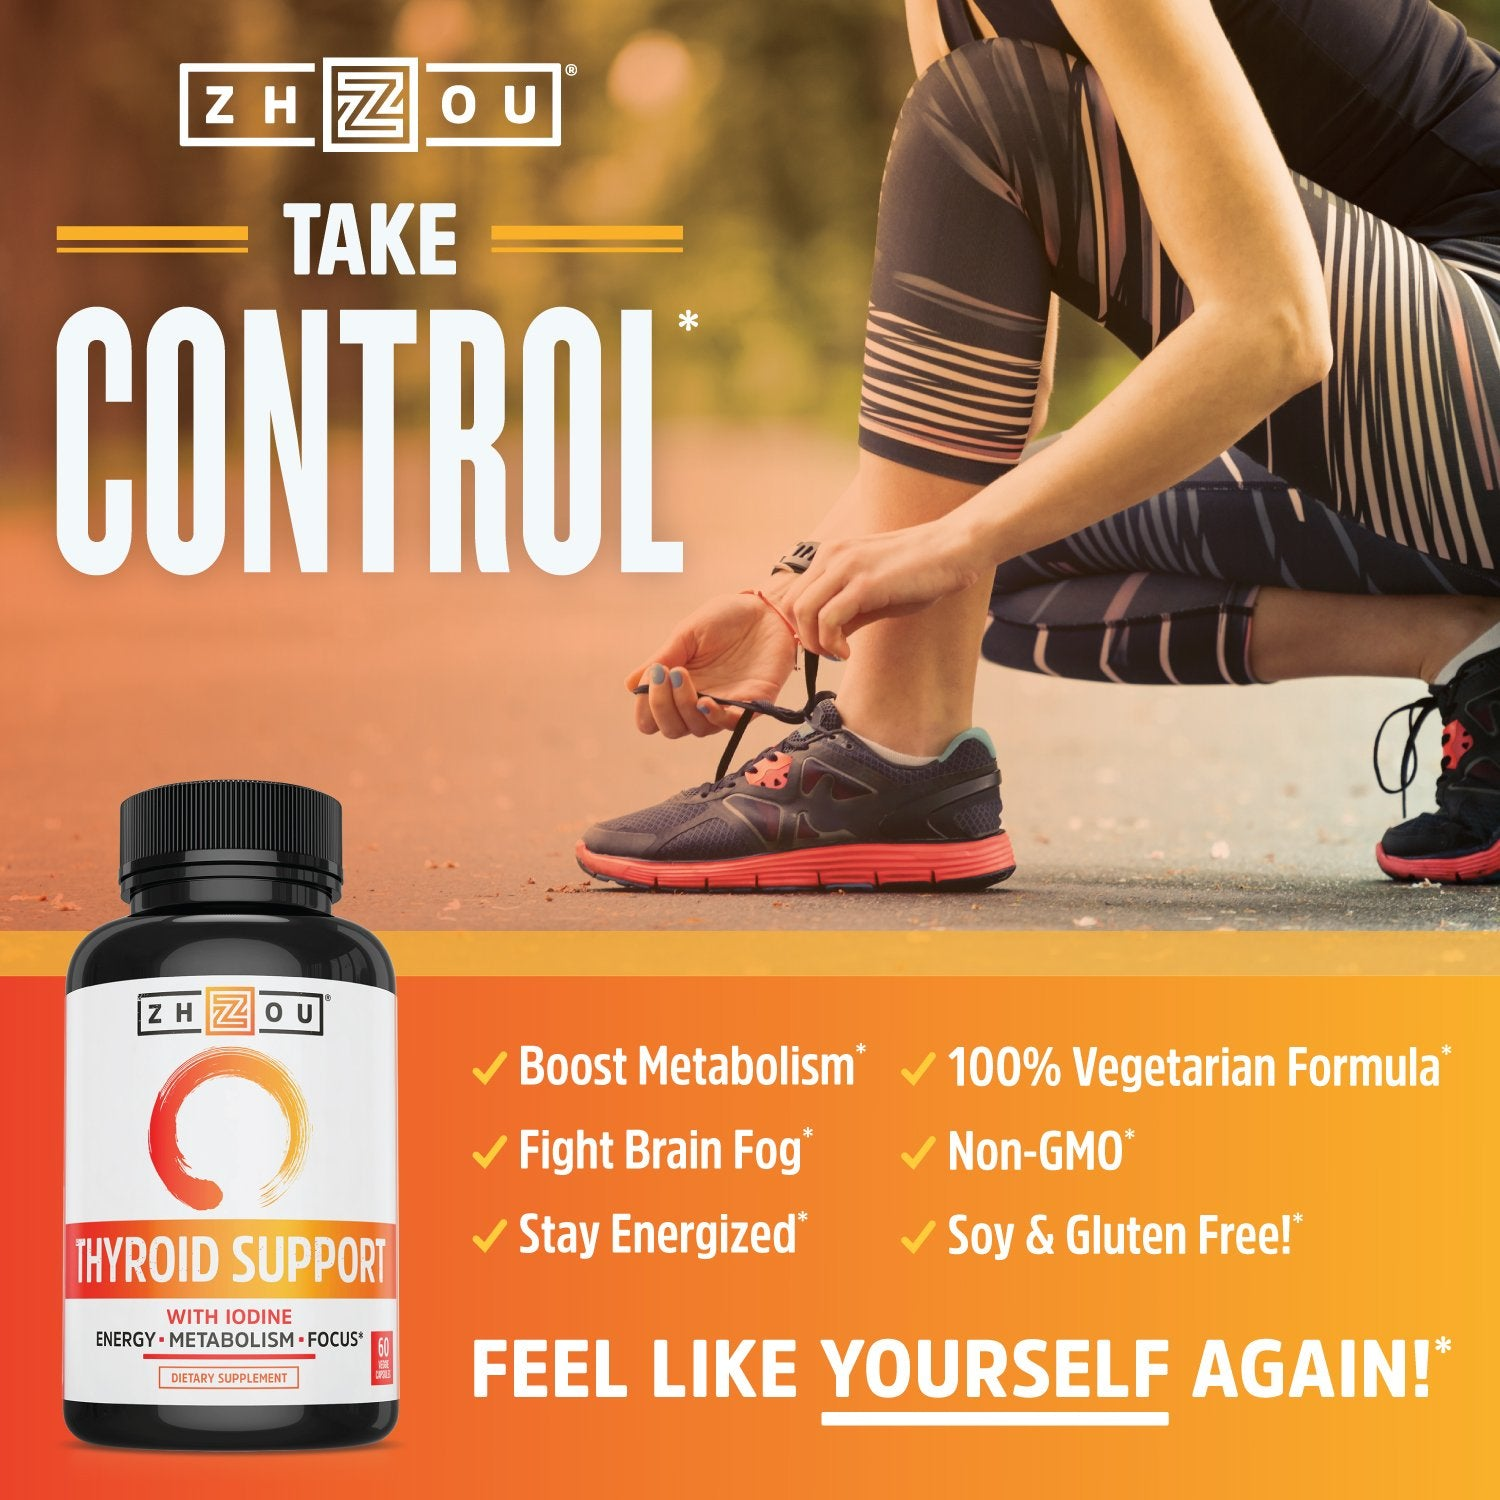 Thyroid Support Complex with Iodine - Energy, Metabolism & Focus Formula - Vegetarian, Soy & Gluten Free - 'Feel Like Your Old Self Again' - Ctfitnesswear